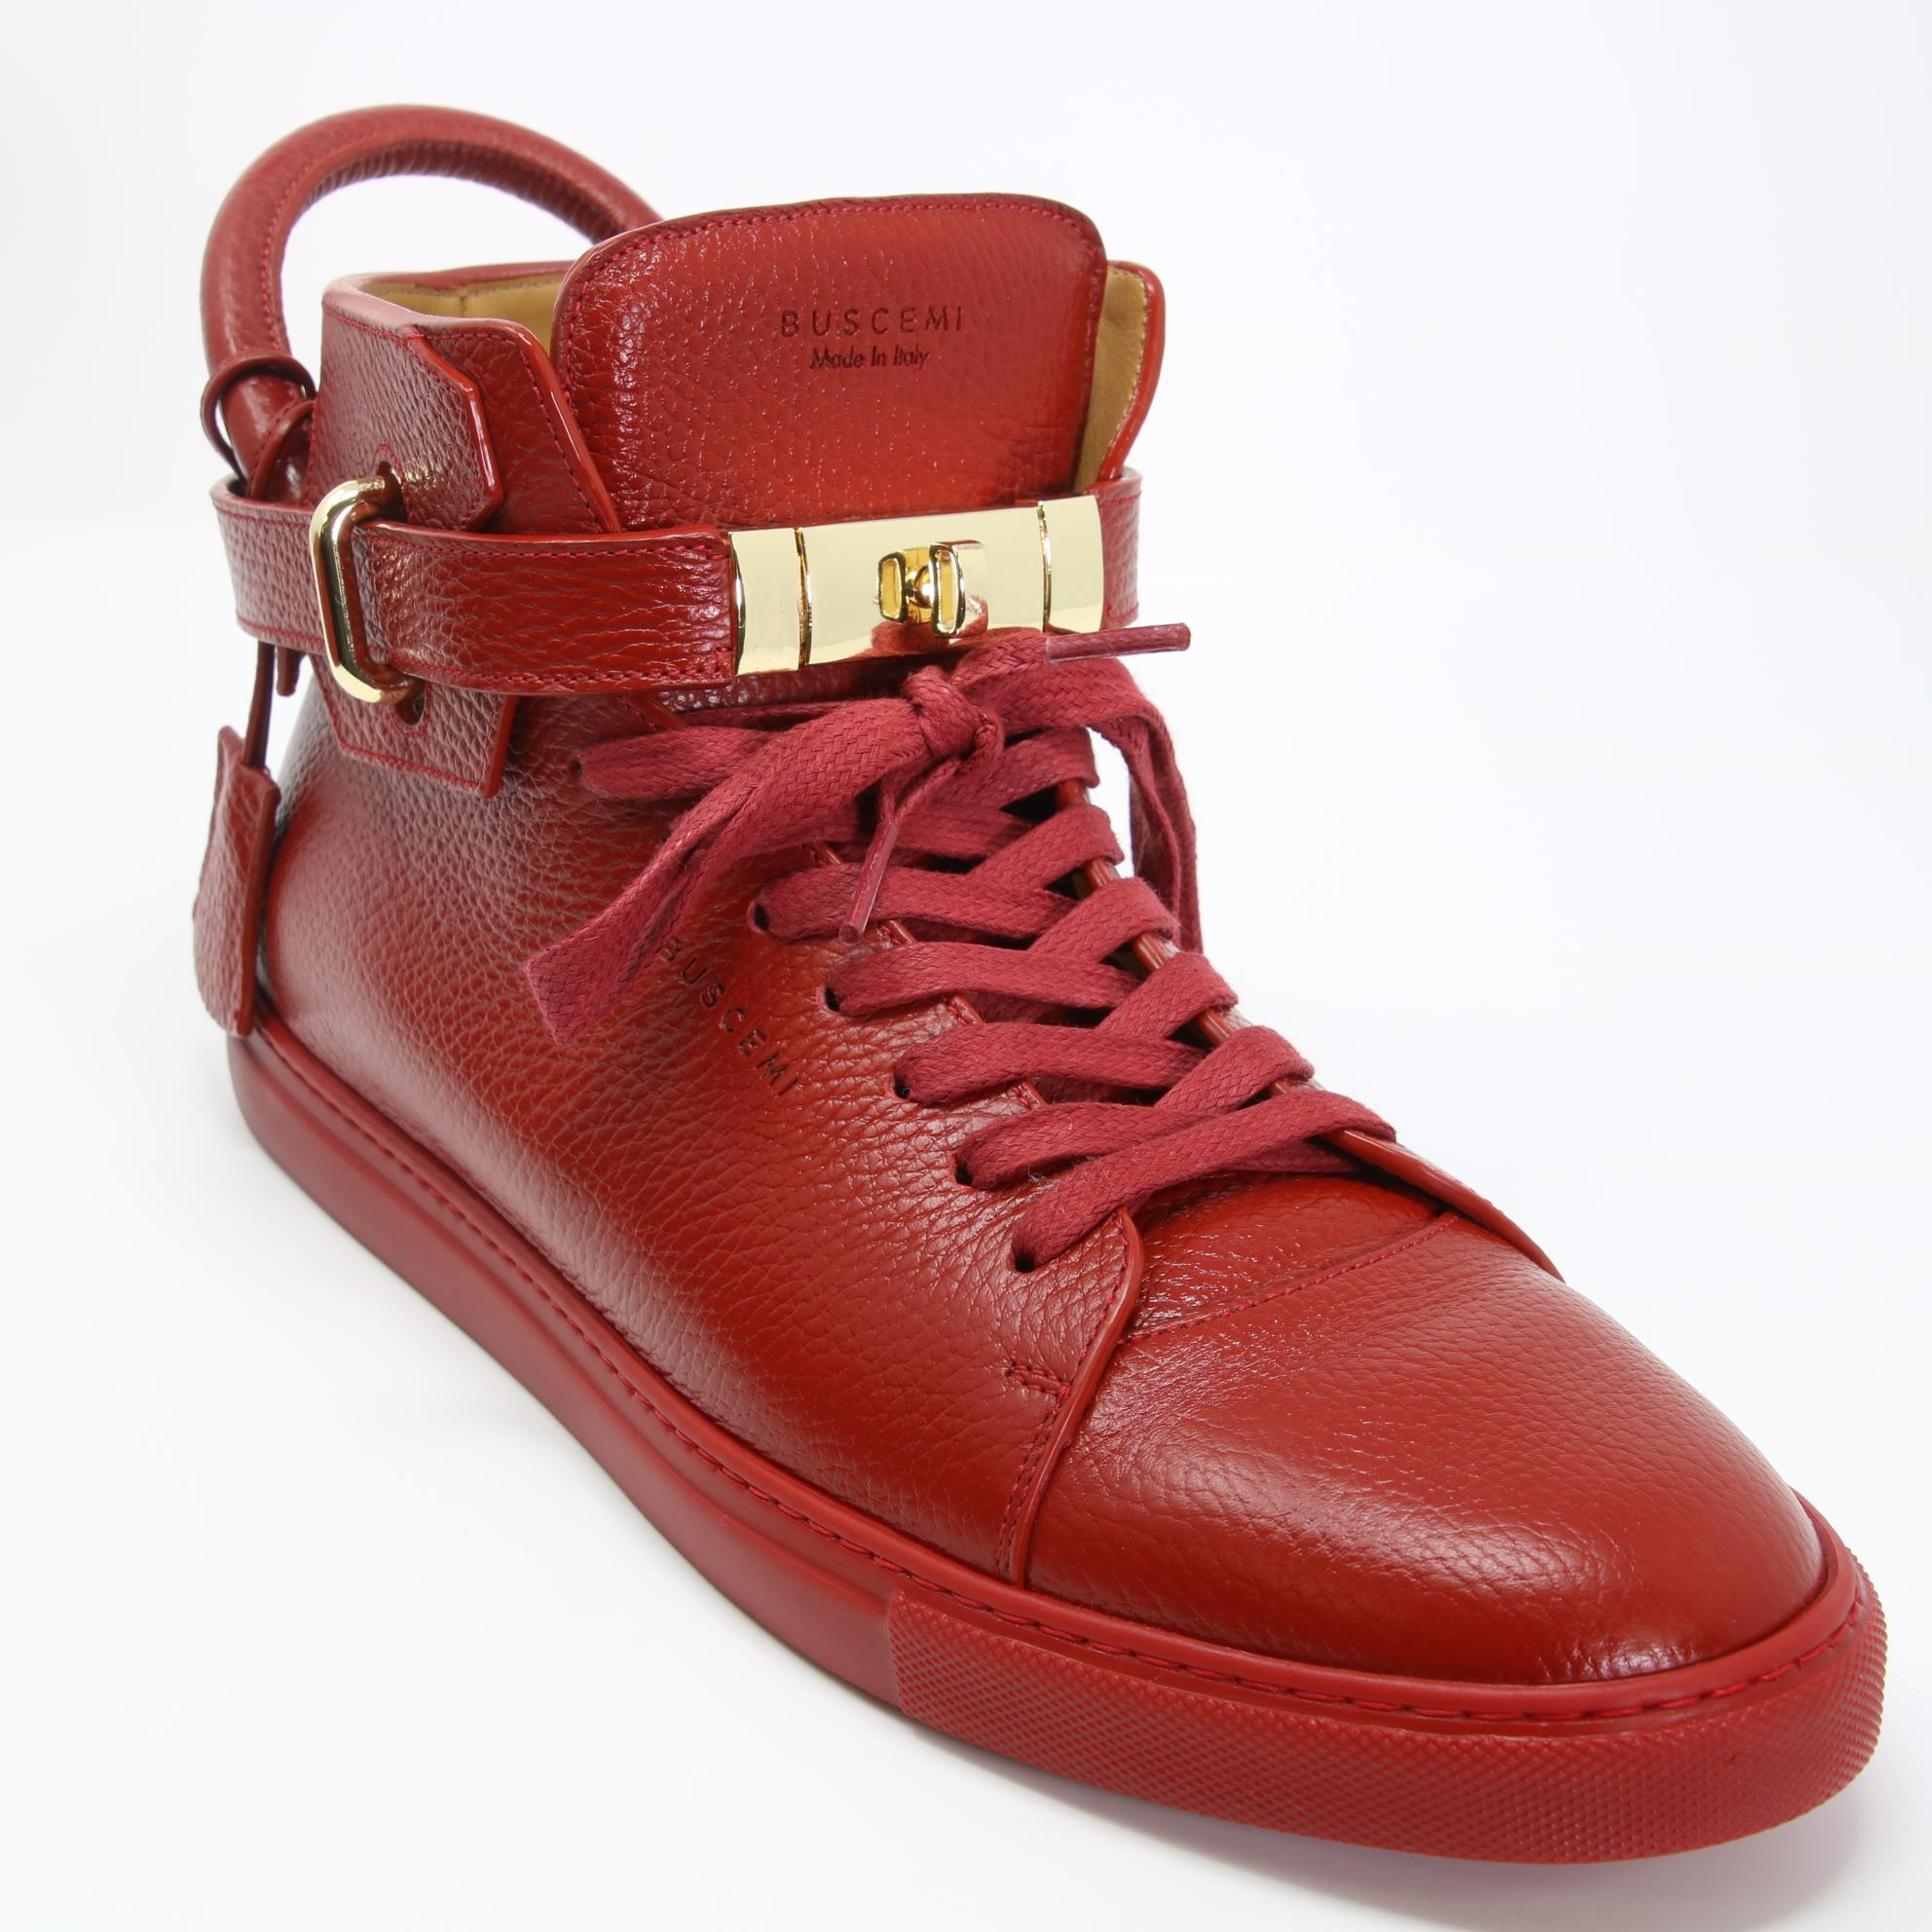 100 MM High Top Leather Sneakers in Red. - size 12 (also in 10,8,9) Buscemi